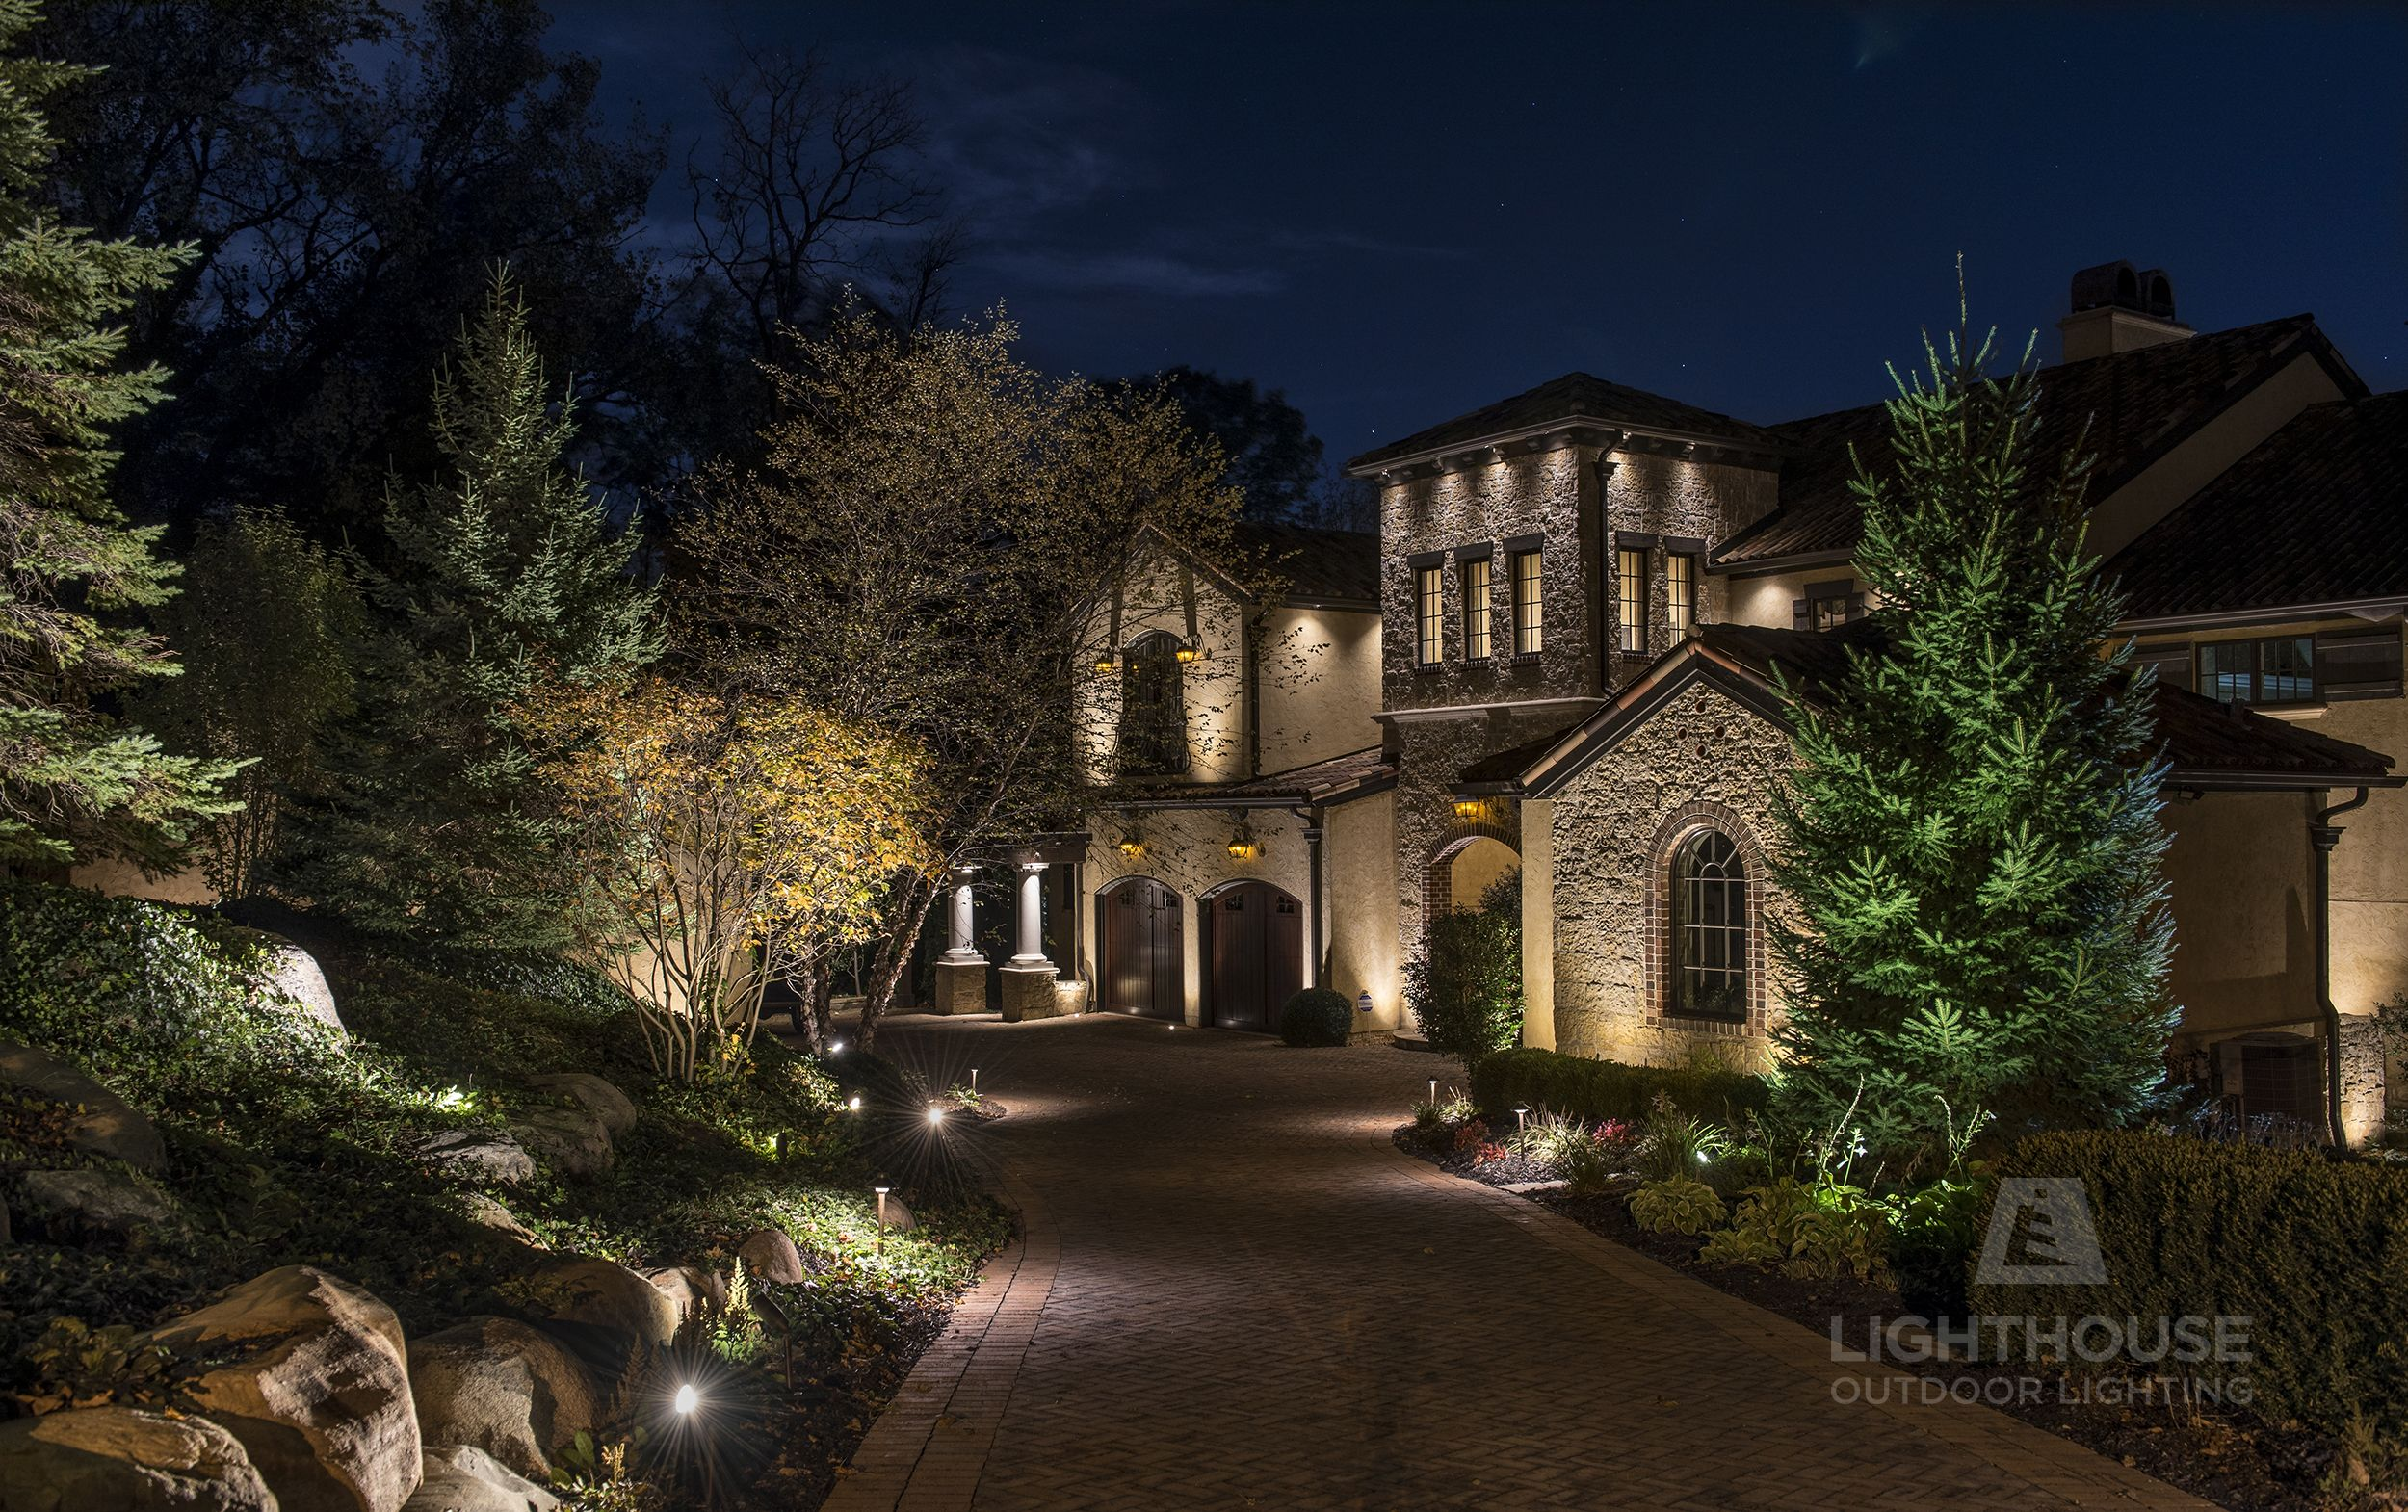 Spanish Mediterranean Home Lit By Lighthouse Outdoor Lighting Of Indianapolis Winner Of The 201 Outdoor Lighting Landscape Lighting Landscape Lighting Design